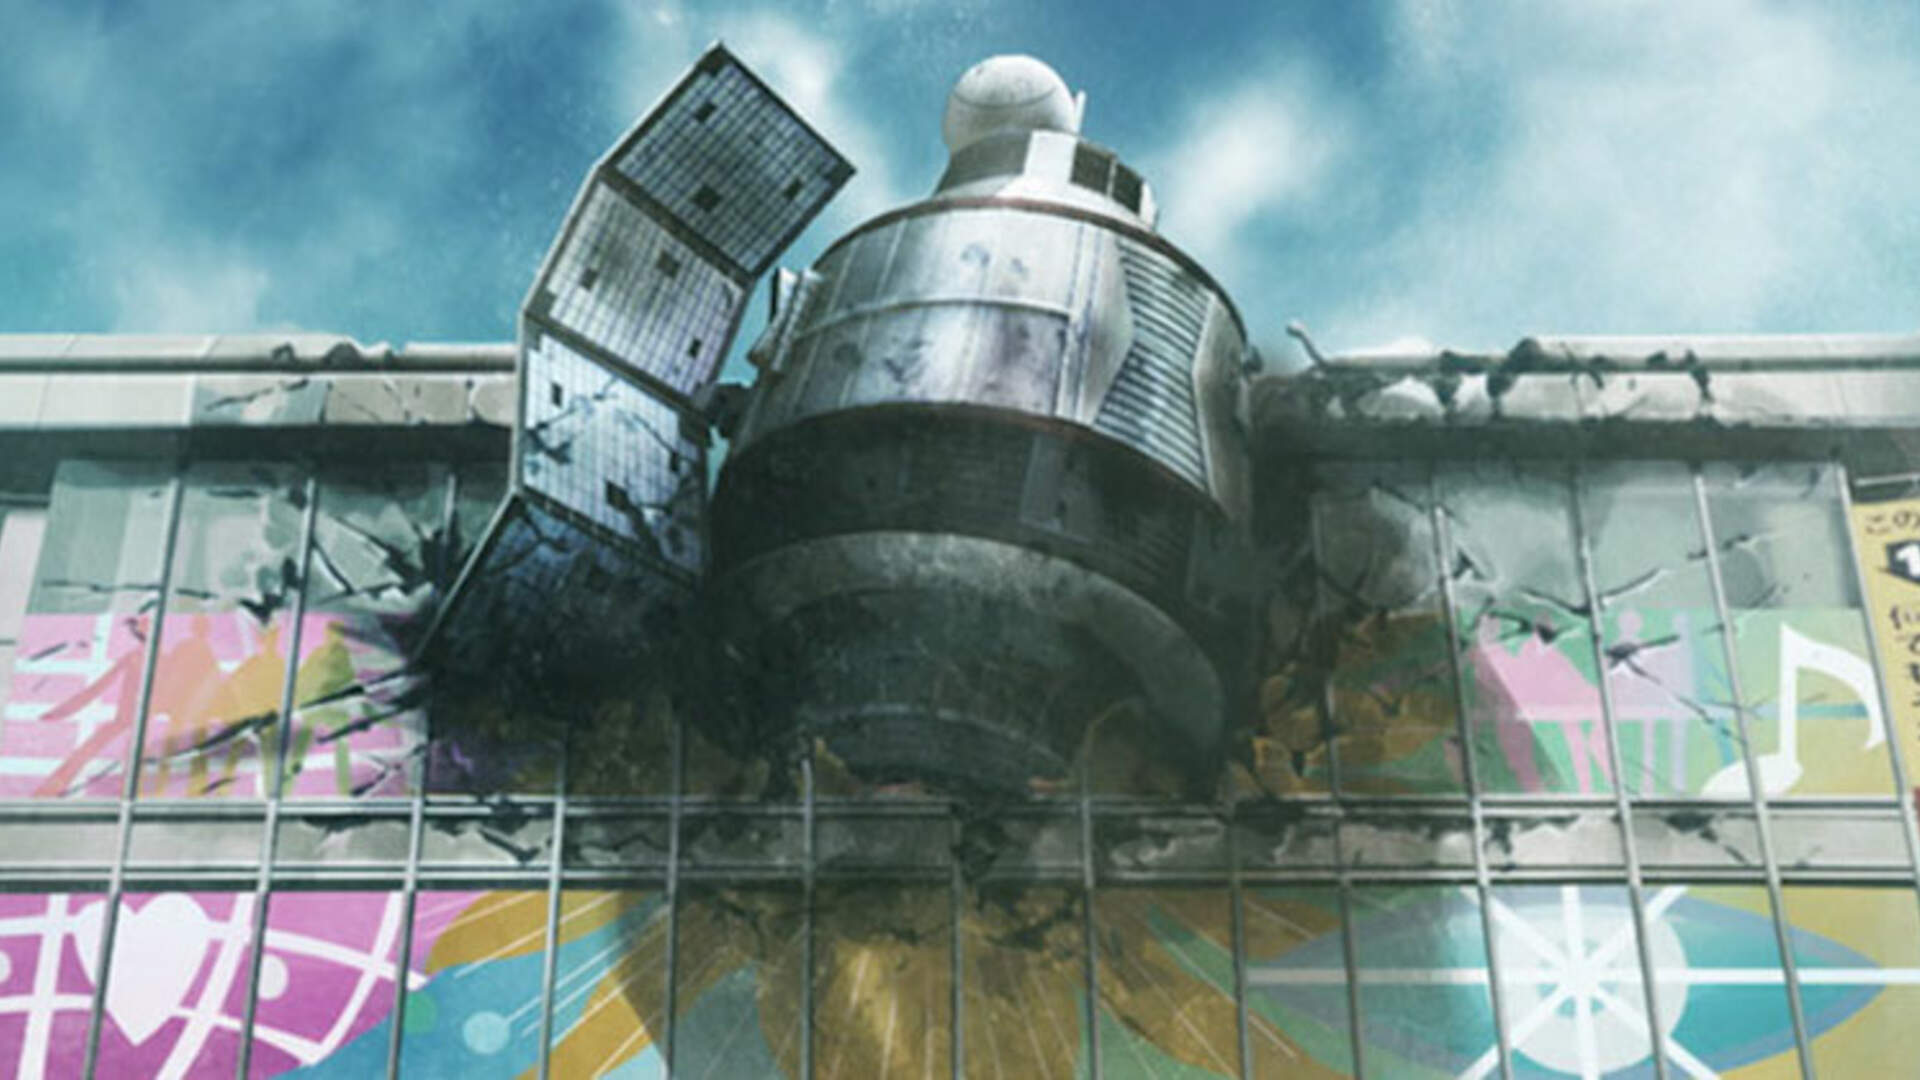 Steins;Gate Complete Walkthrough: Get All the Endings and Achievements